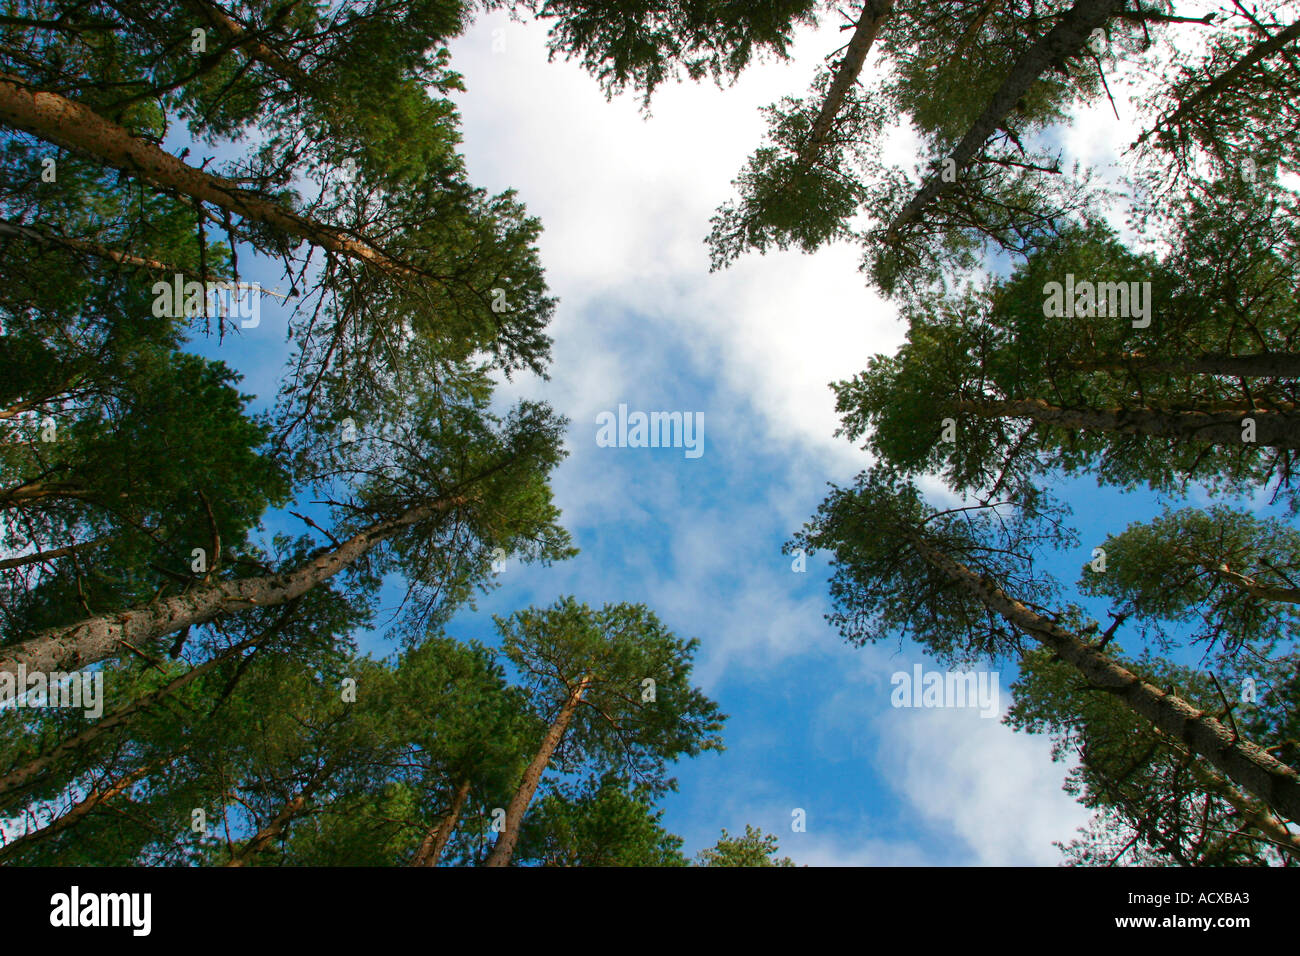 Looking up at blue sky with clouds through pine trees - Stock Image